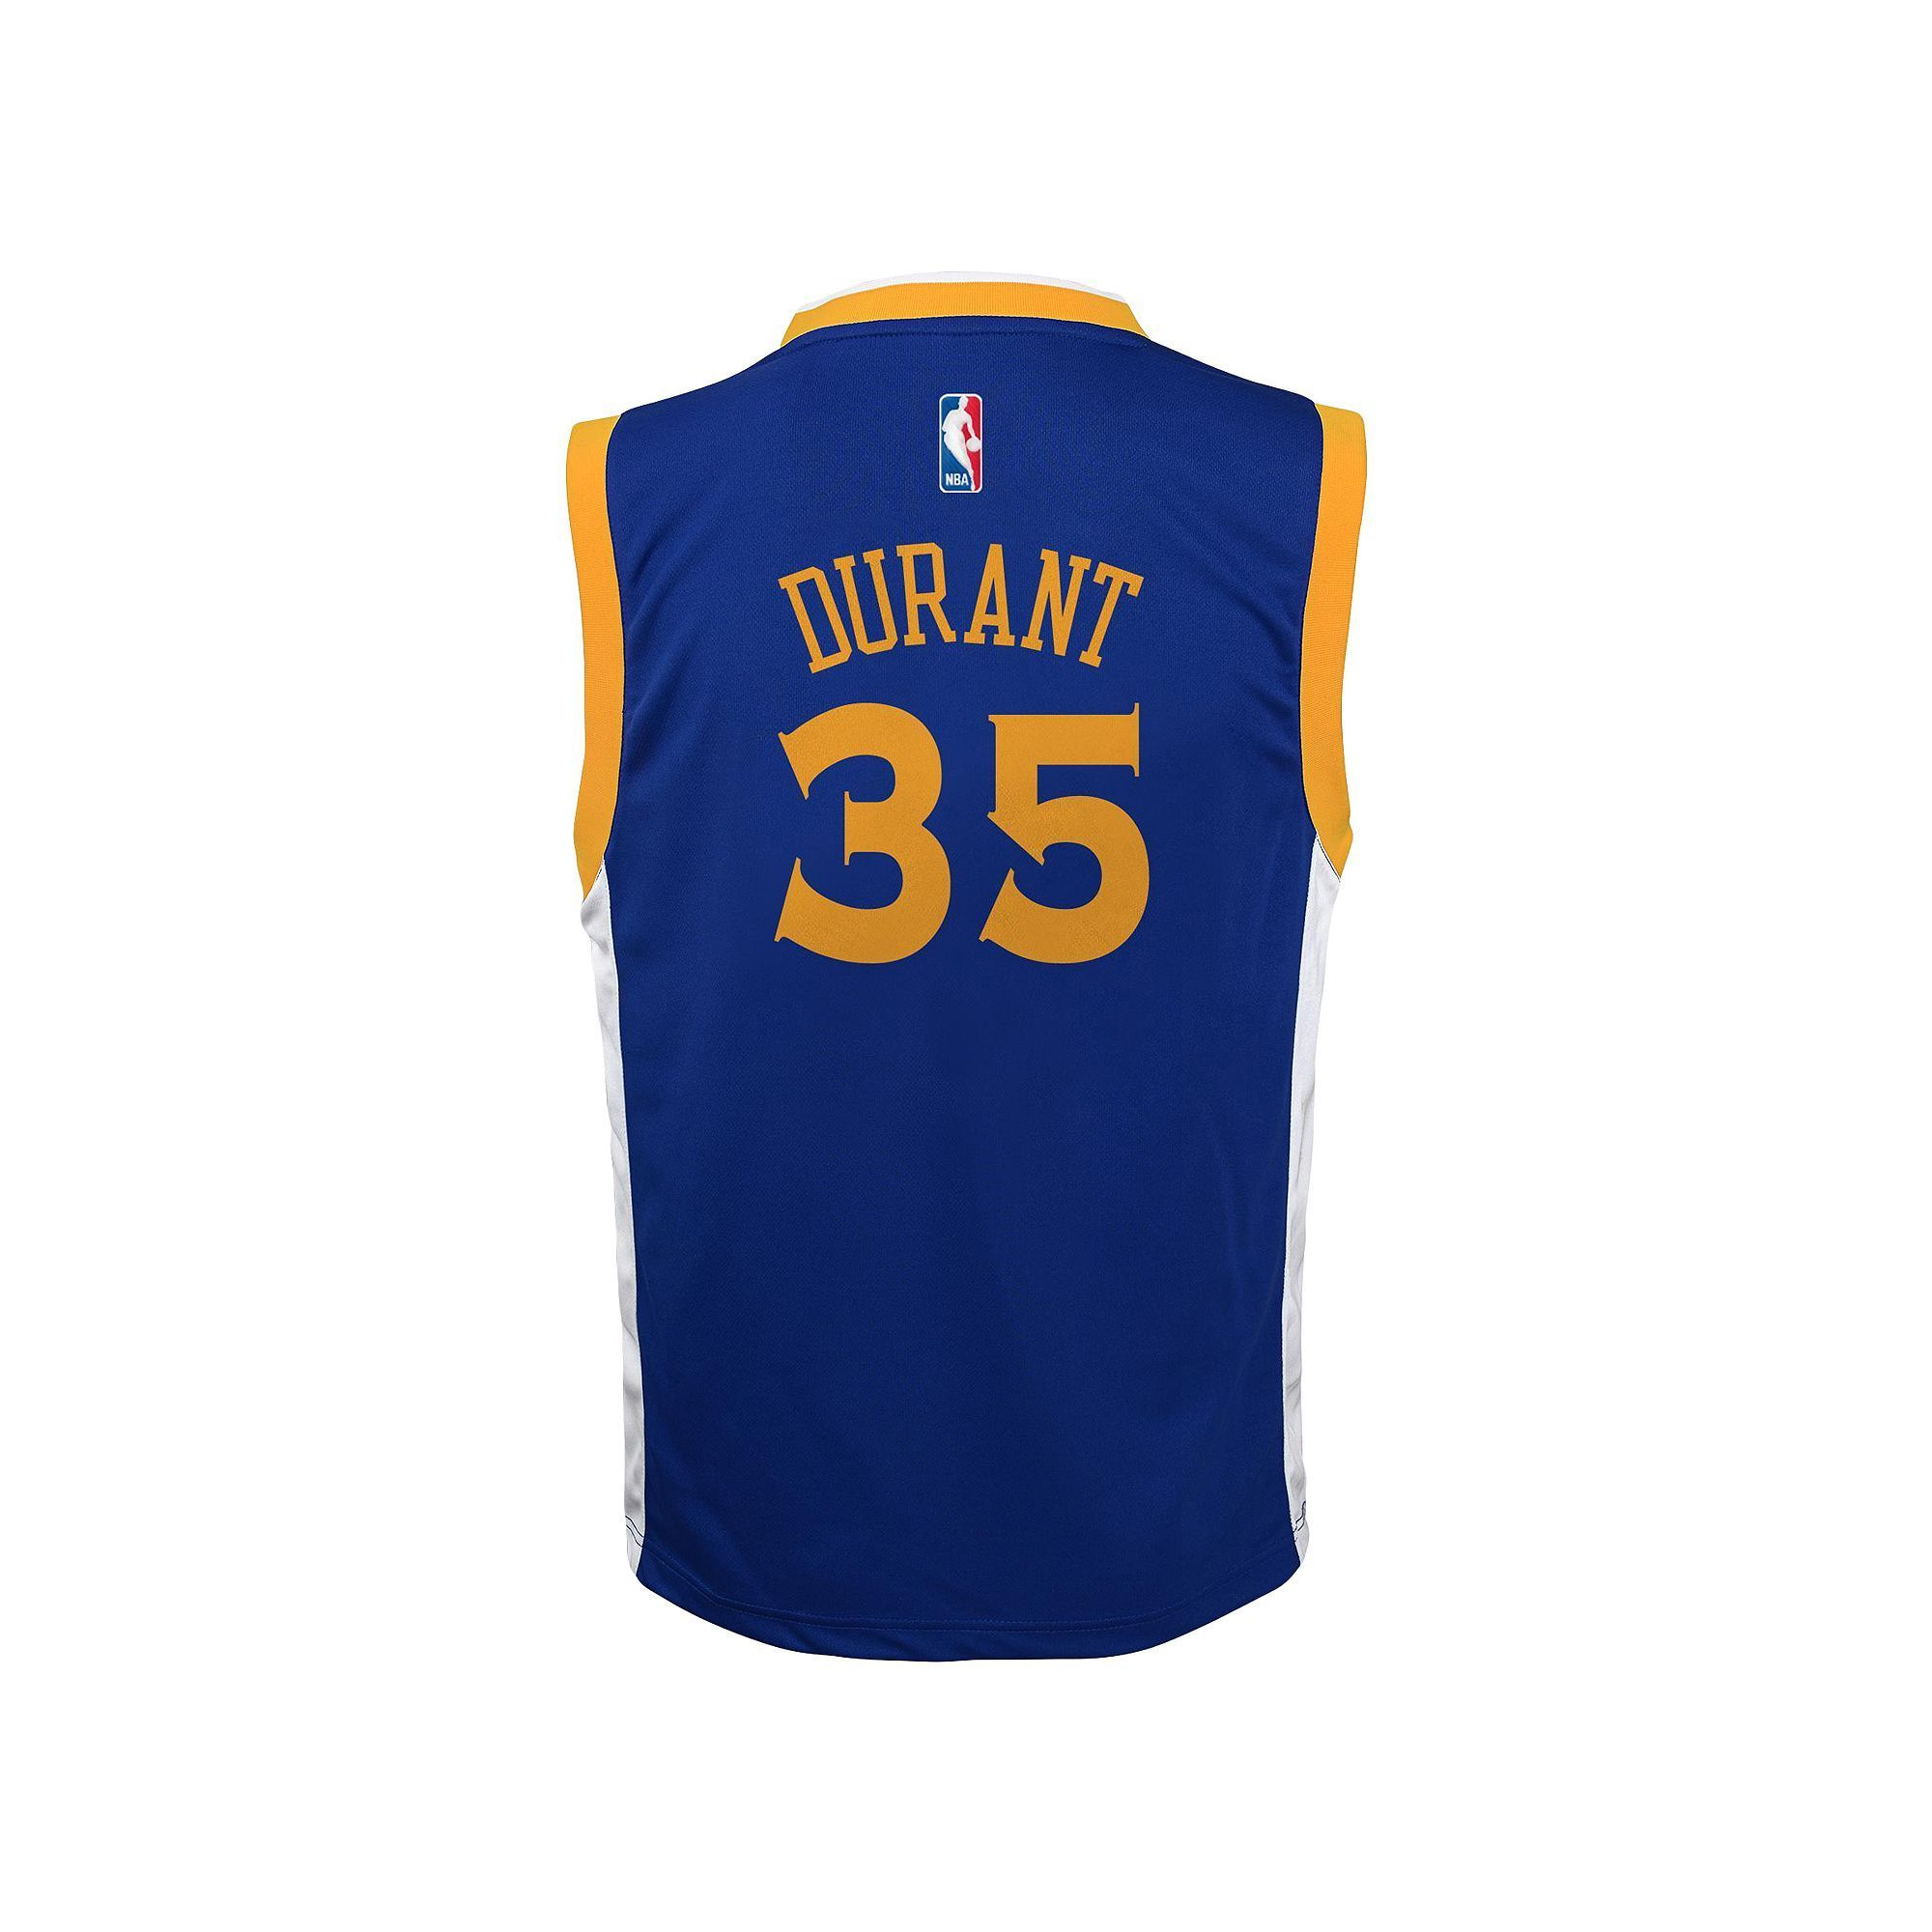 bff067b2 Toddler Adidas Golden State Warriors Kevin Durant Replica Jersey, Kids  Unisex, Size: 2T, White